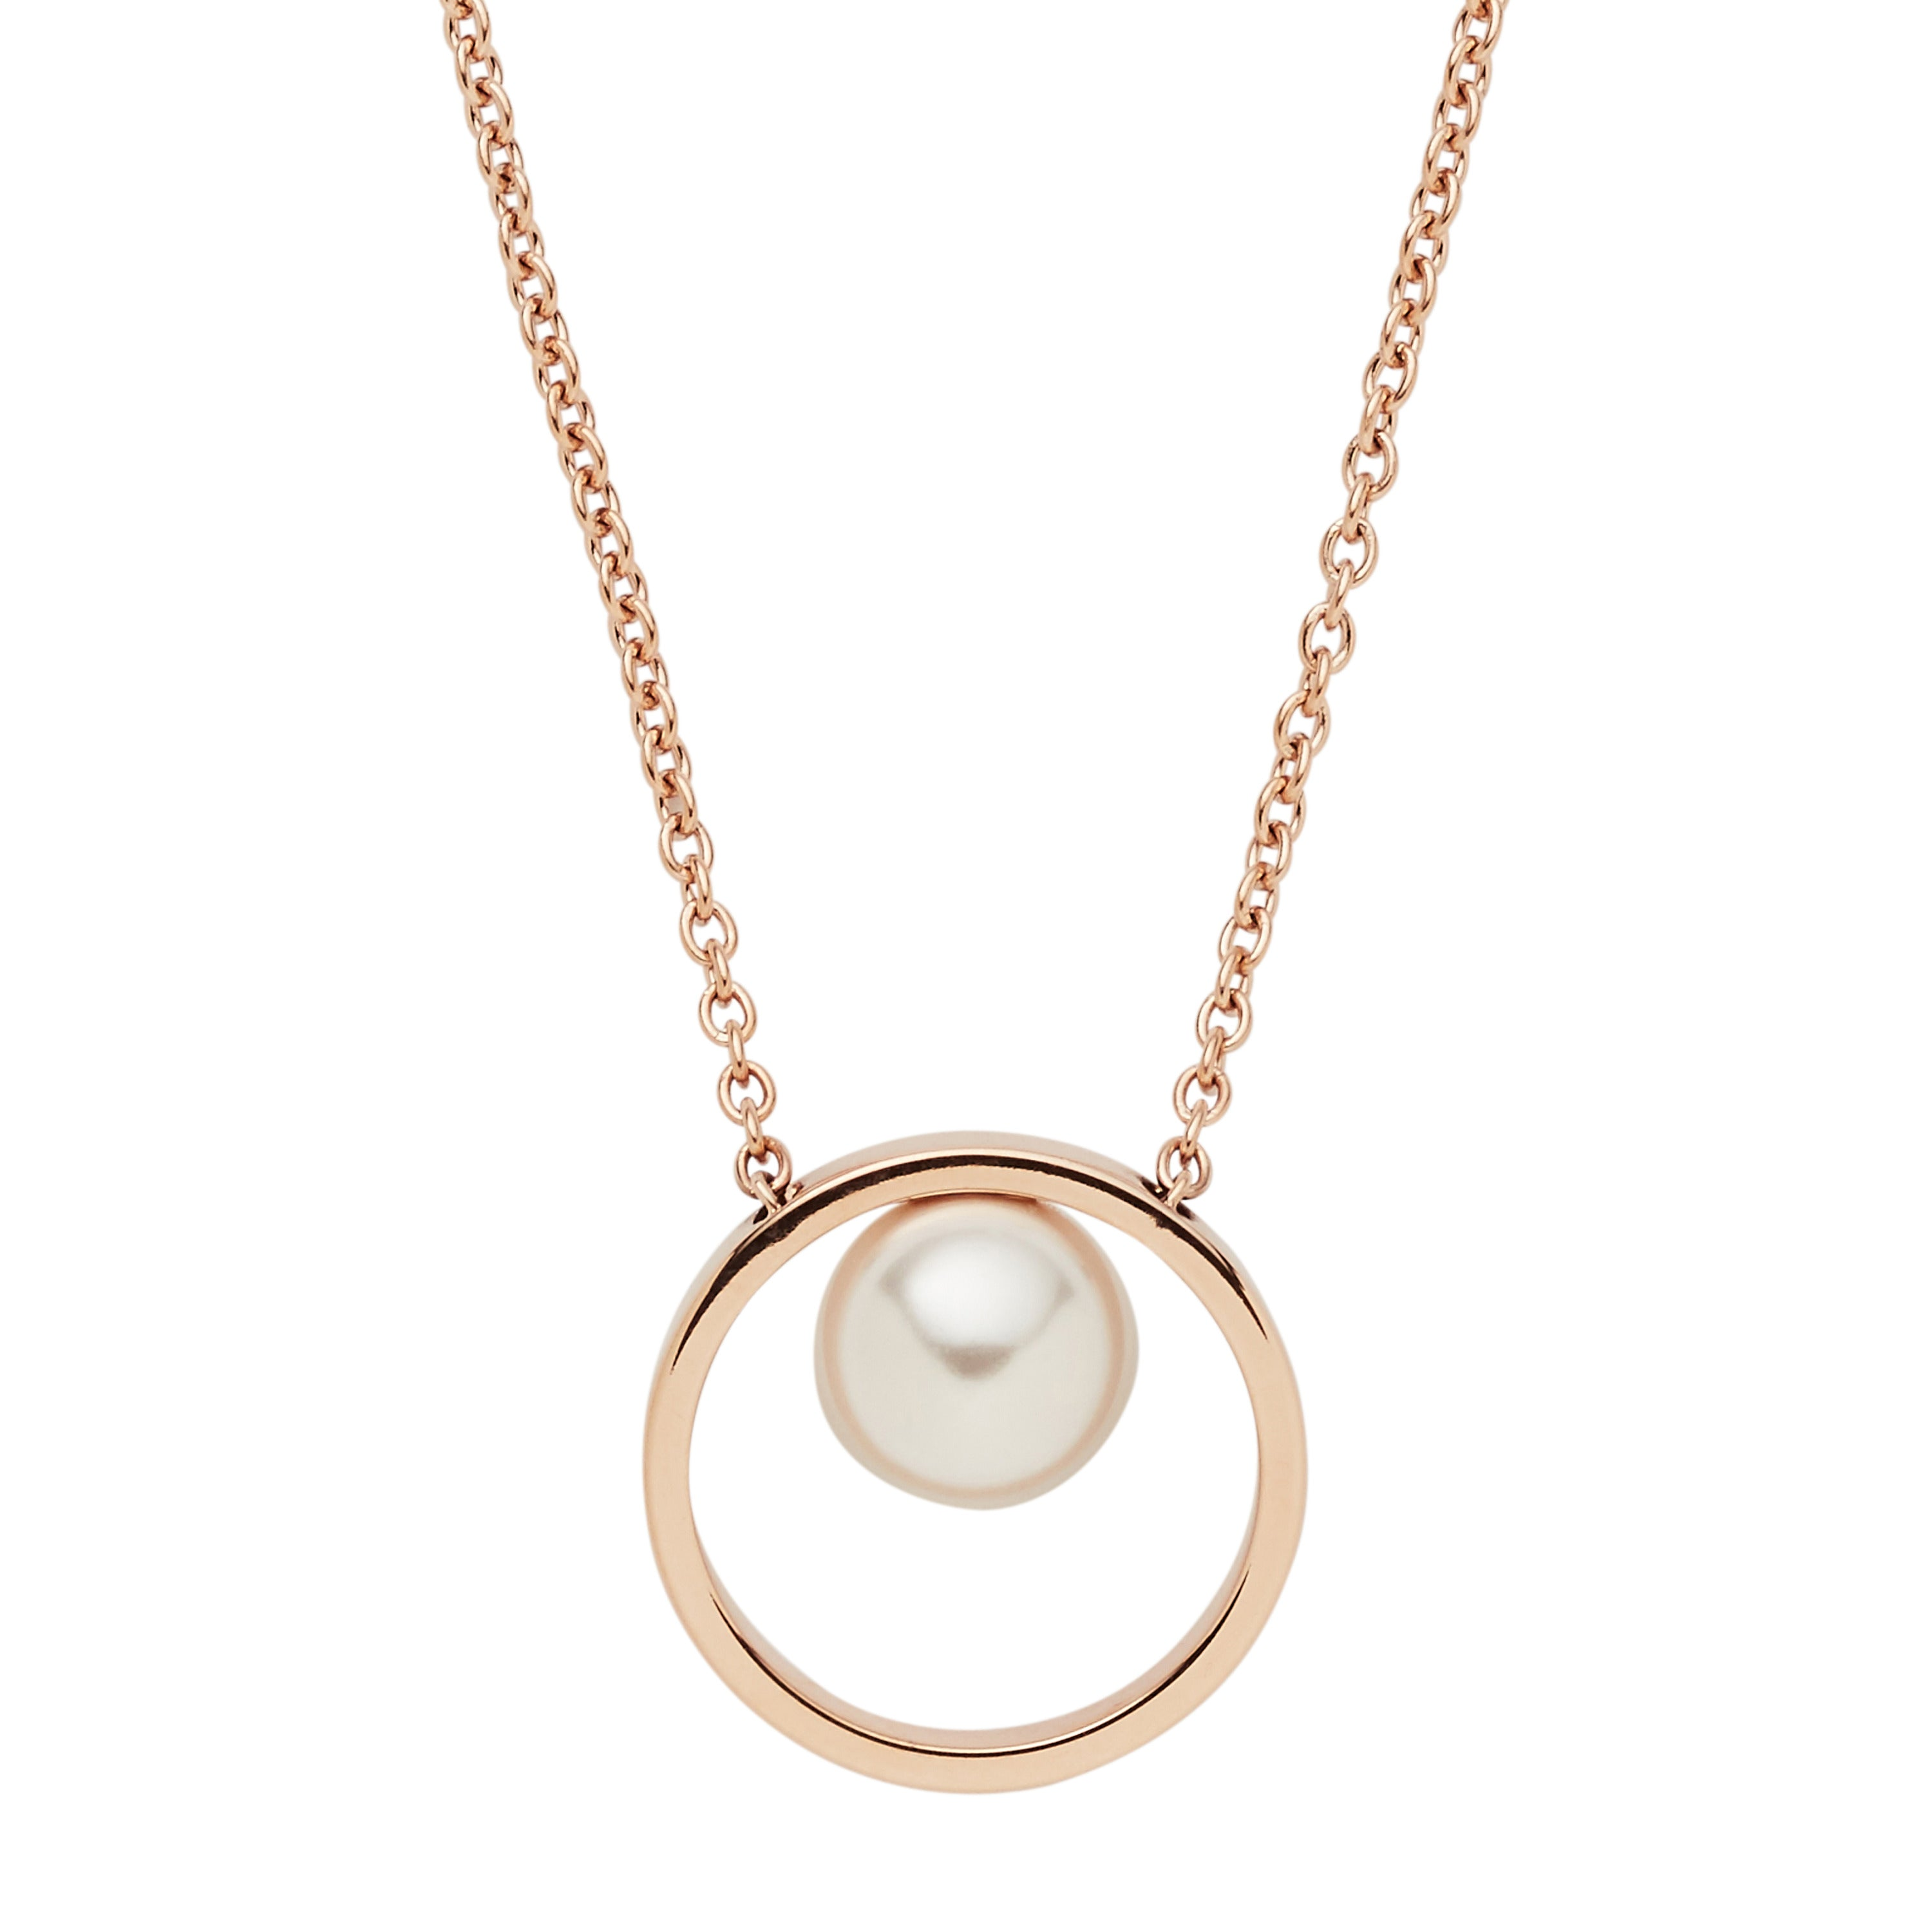 Agnethe rose gold tone pearl pendant necklace skagen agnethe rose gold tone pearl pendant necklace mozeypictures Gallery